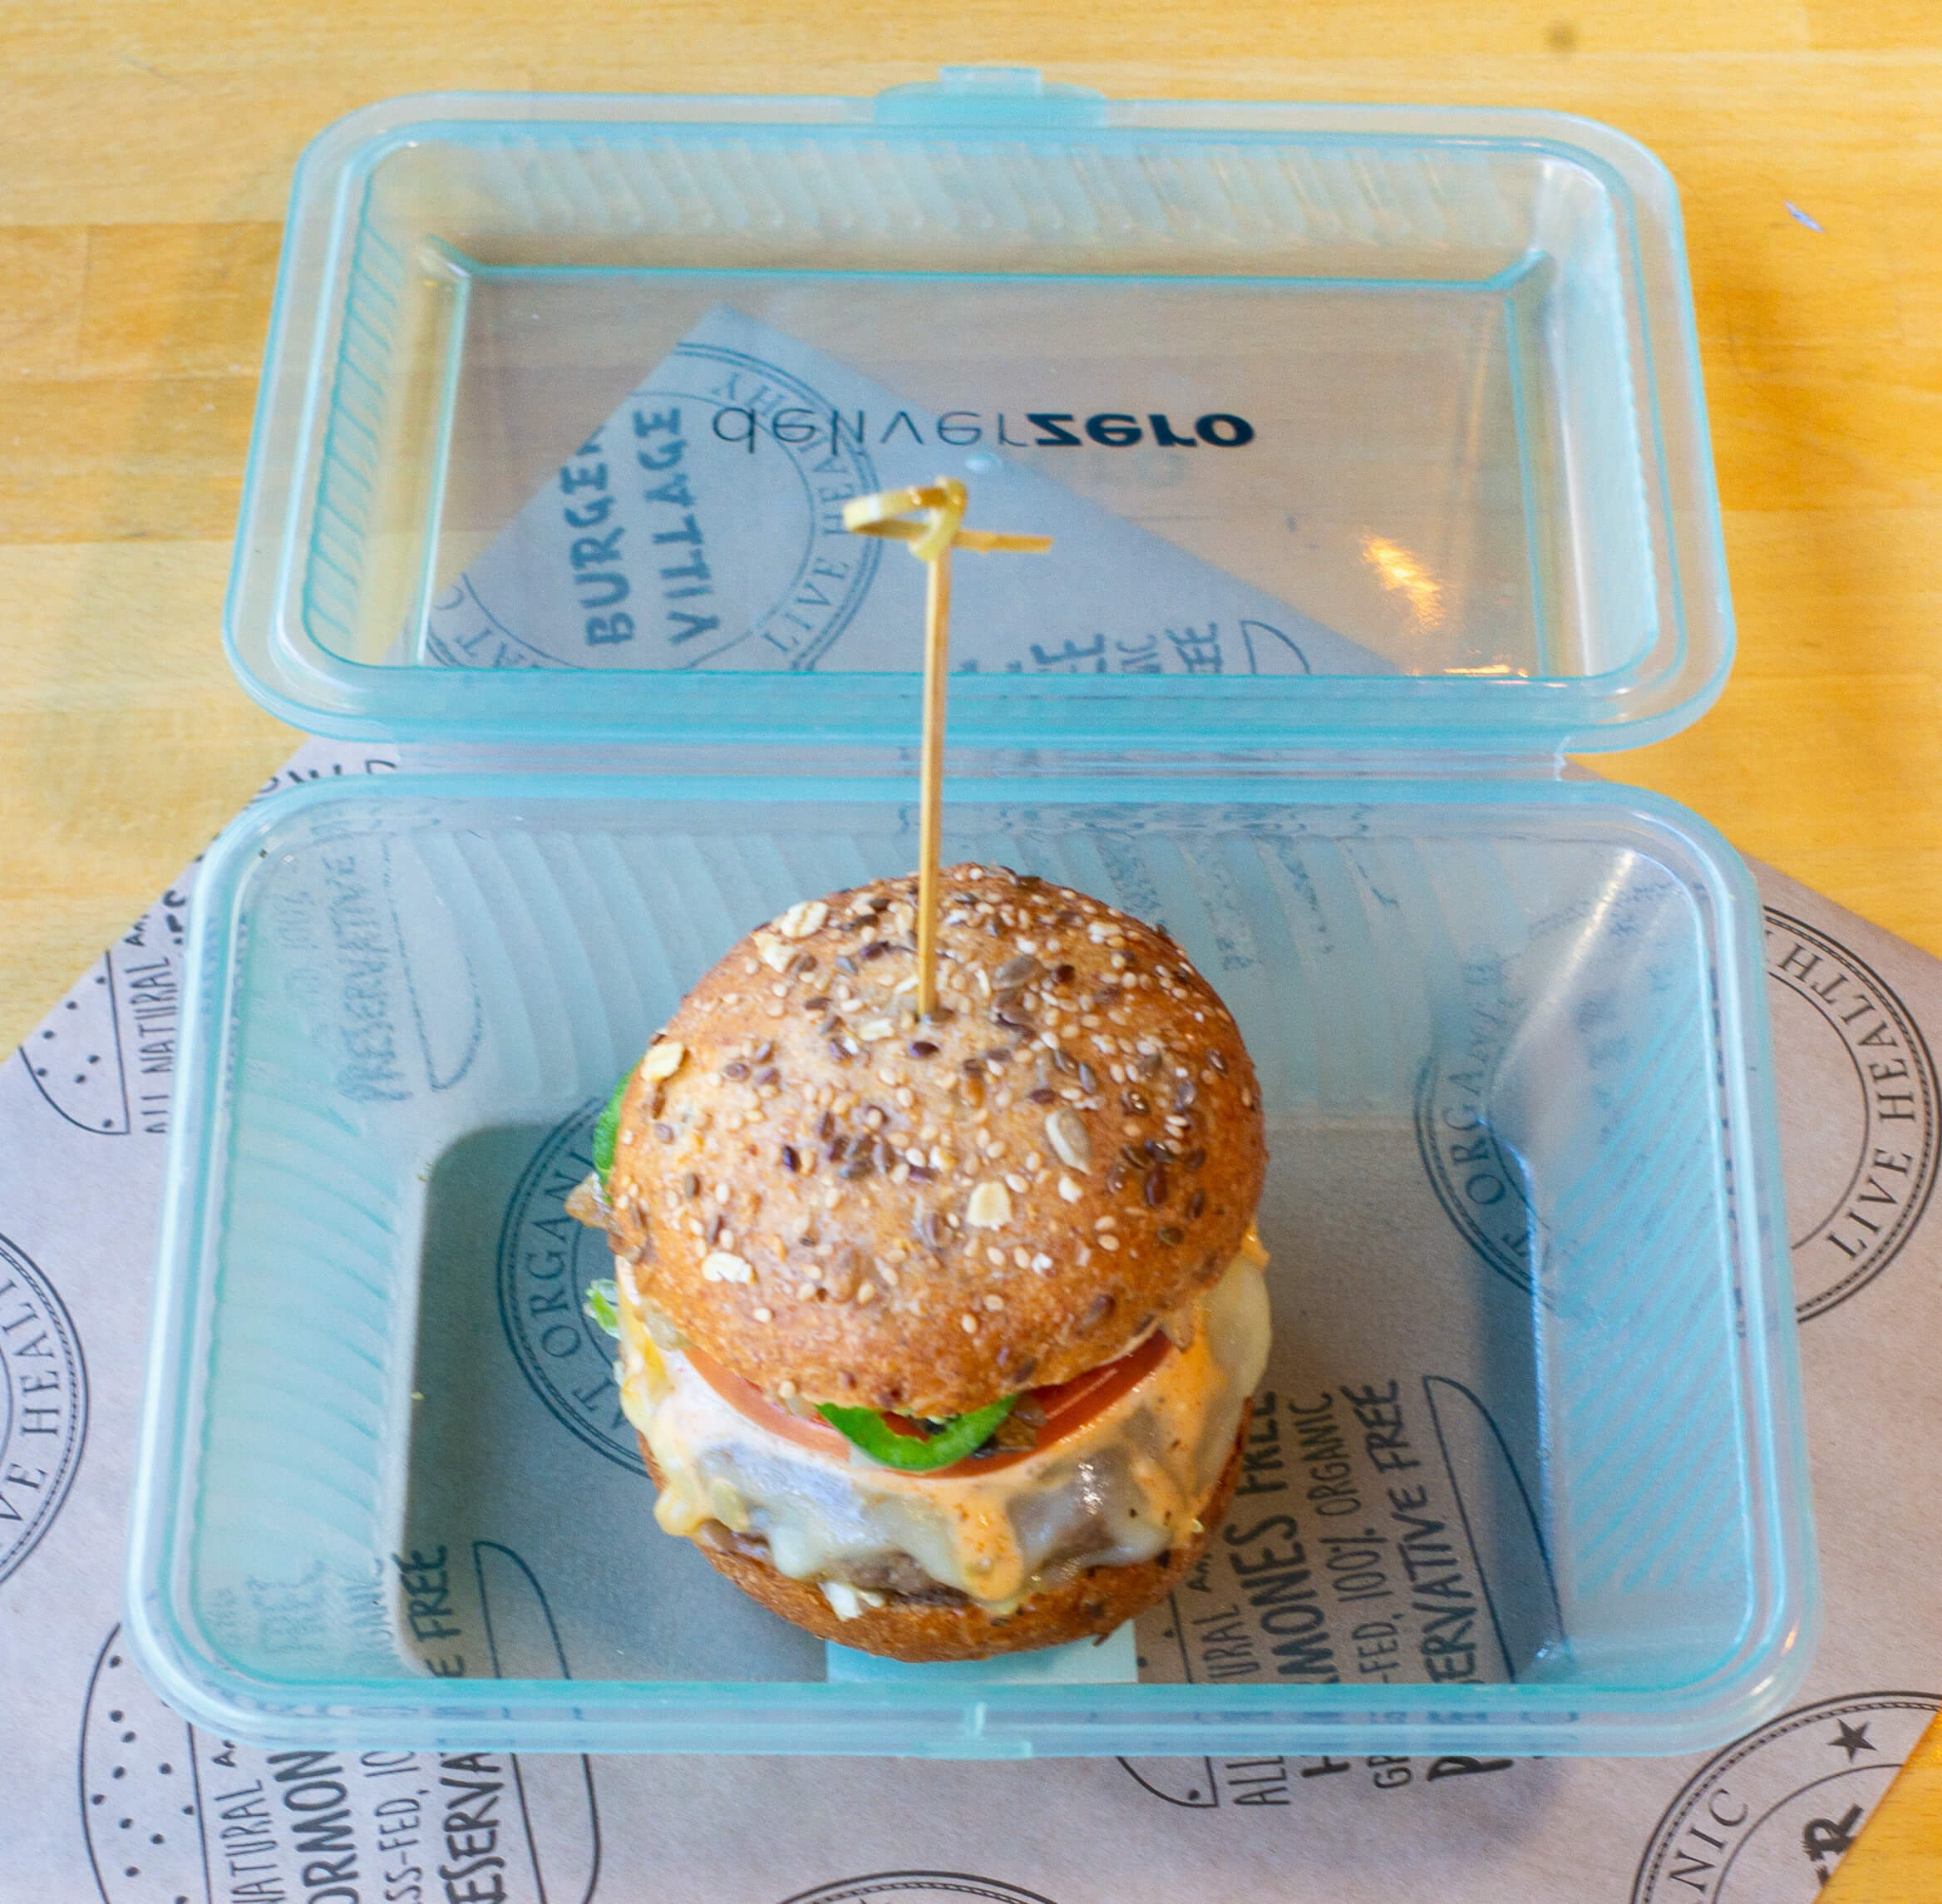 A burger from Burger Village in a DeliverZero box.